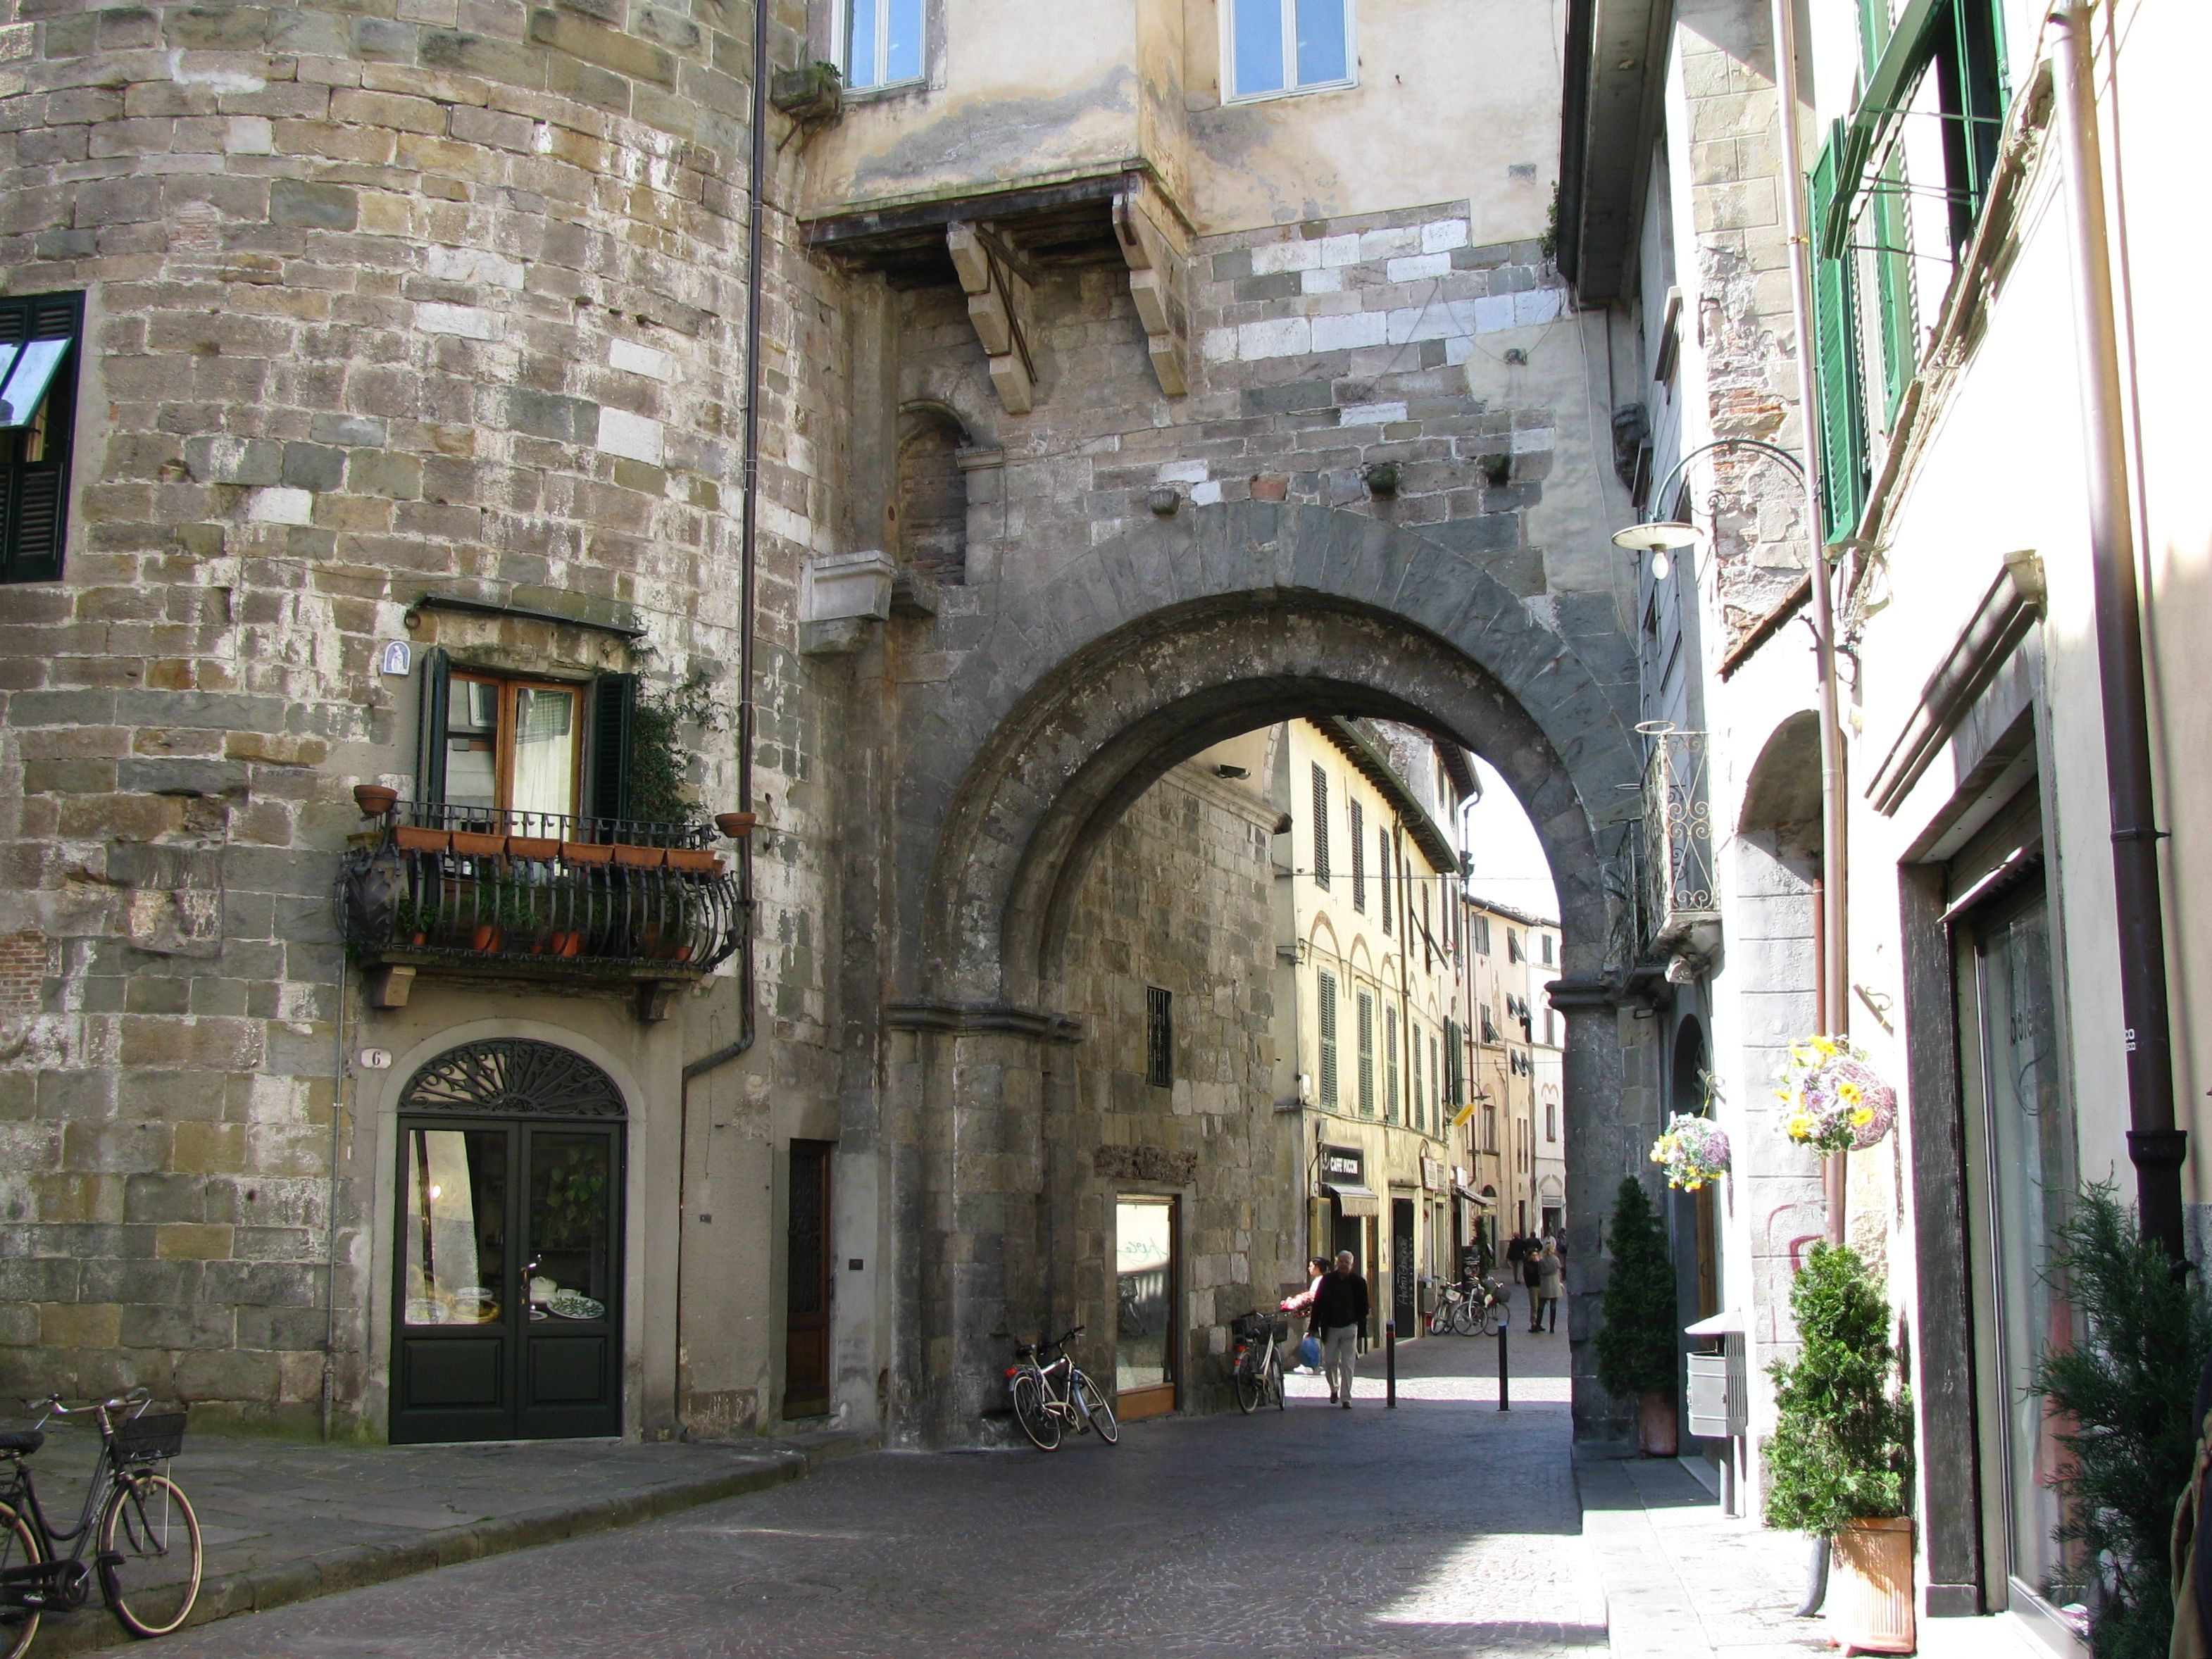 lucca tuscany italy a beautiful medieval walled city on walled id=38173